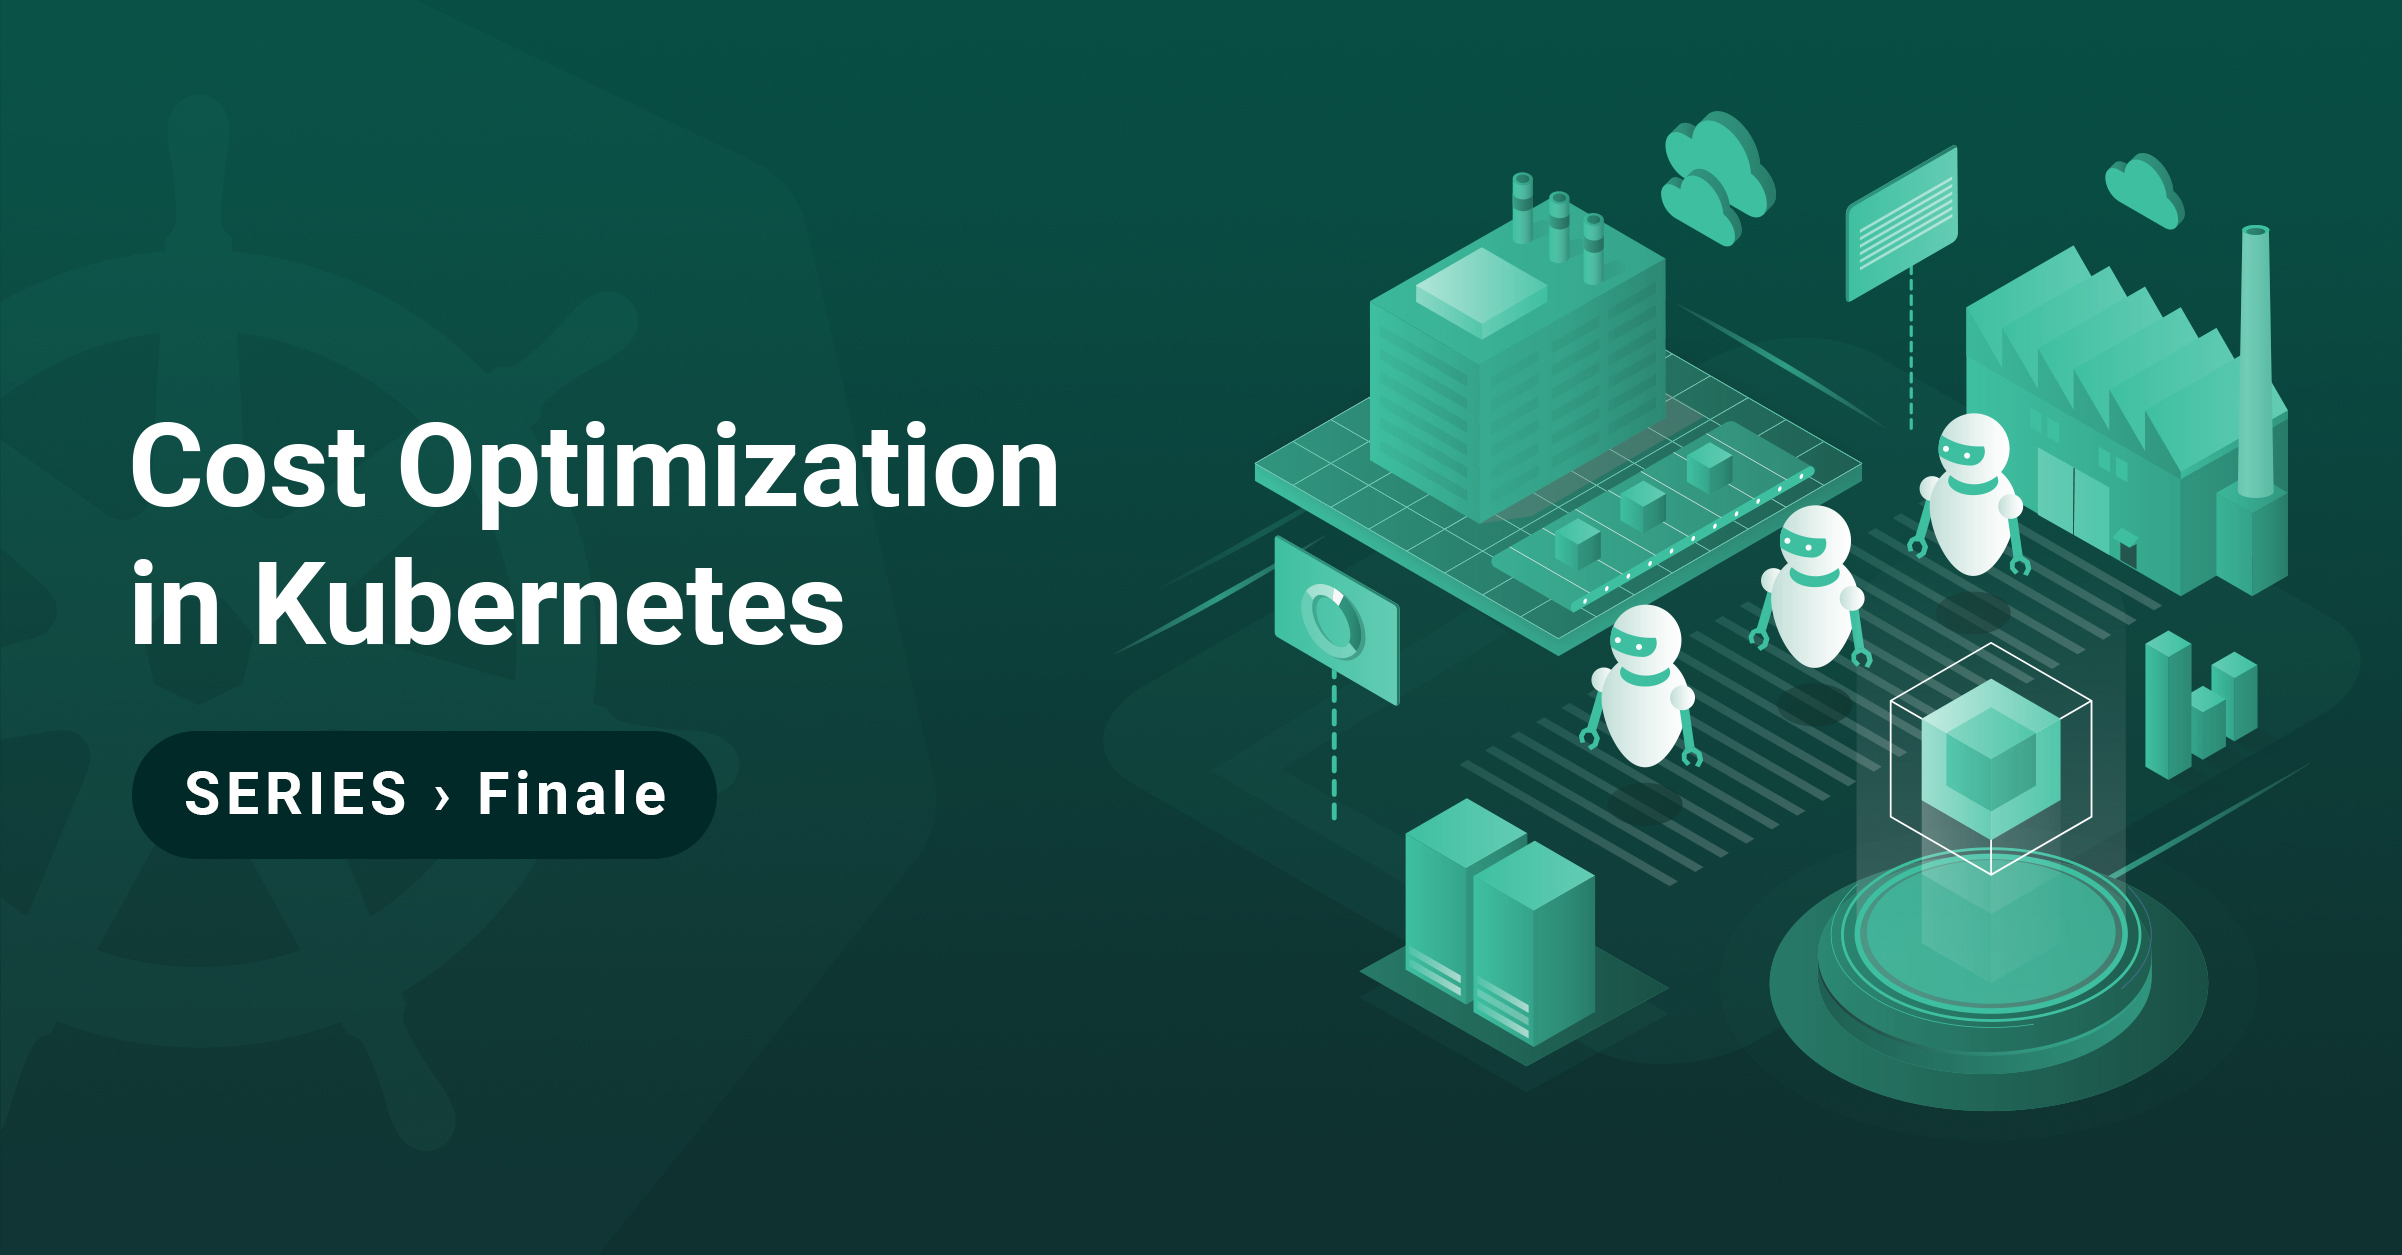 The finale: cost optimization in the cloud image thumbnail